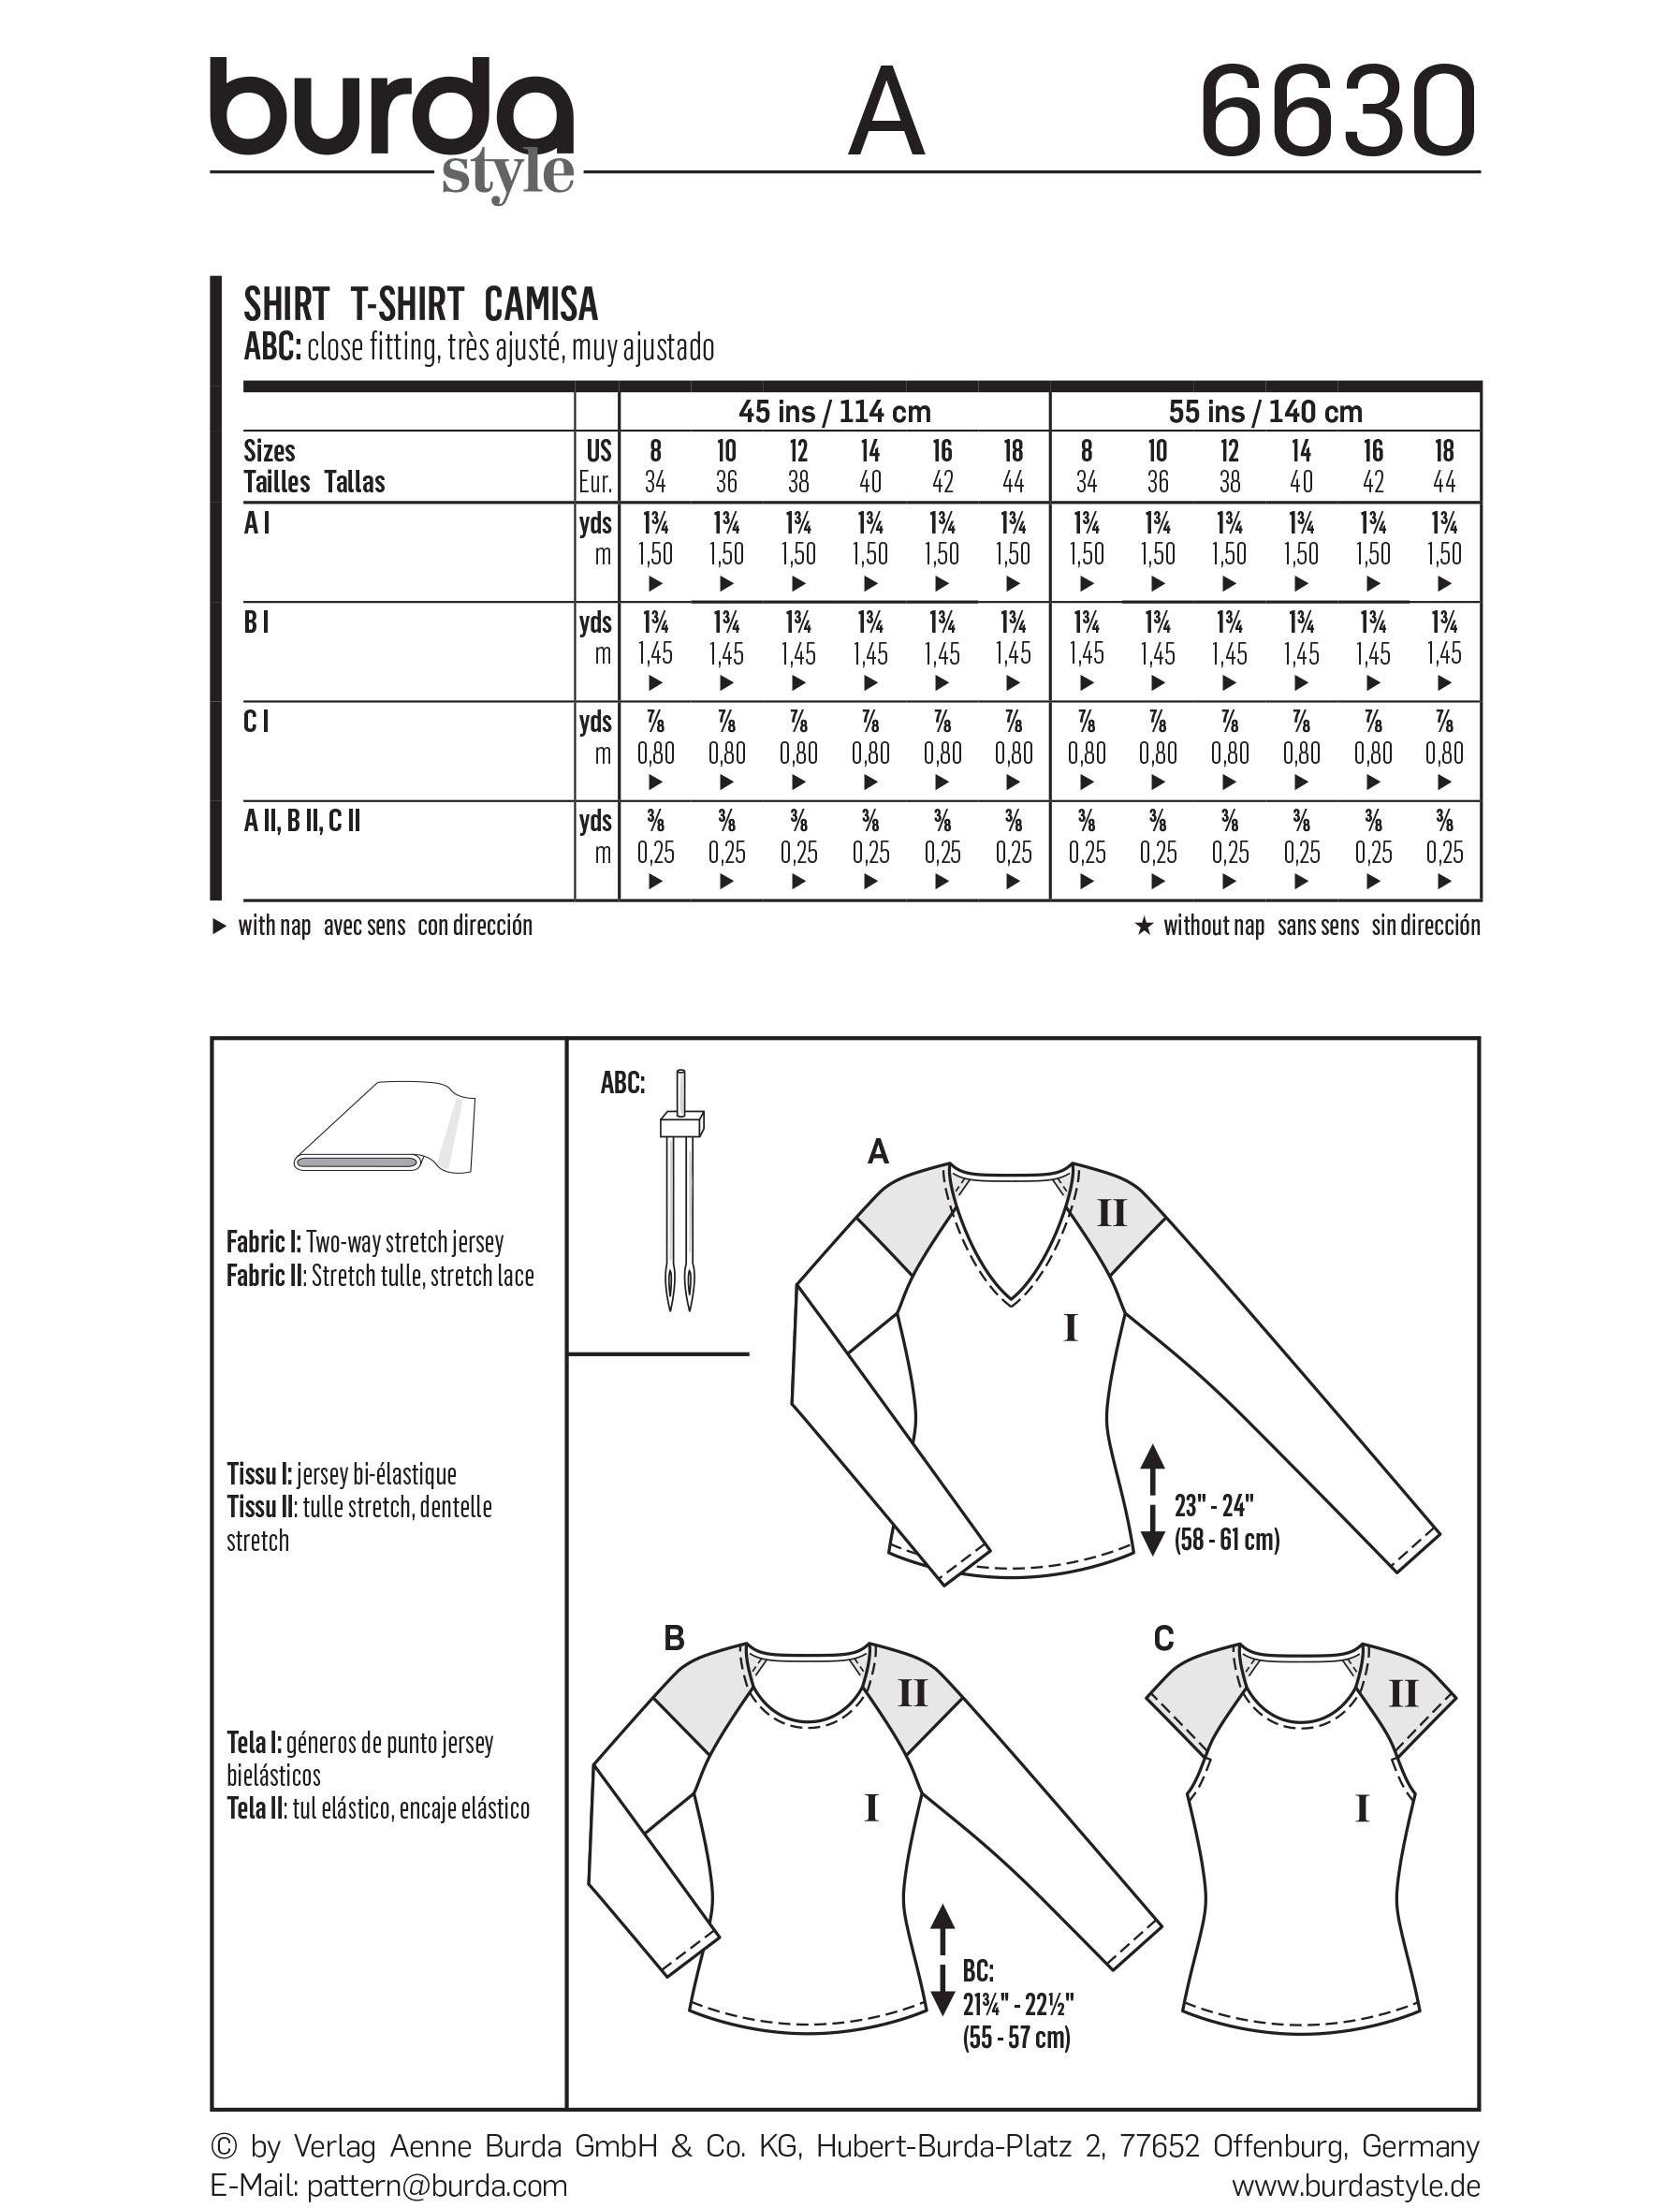 Burda B6630 Women's Shirt Sewing Pattern